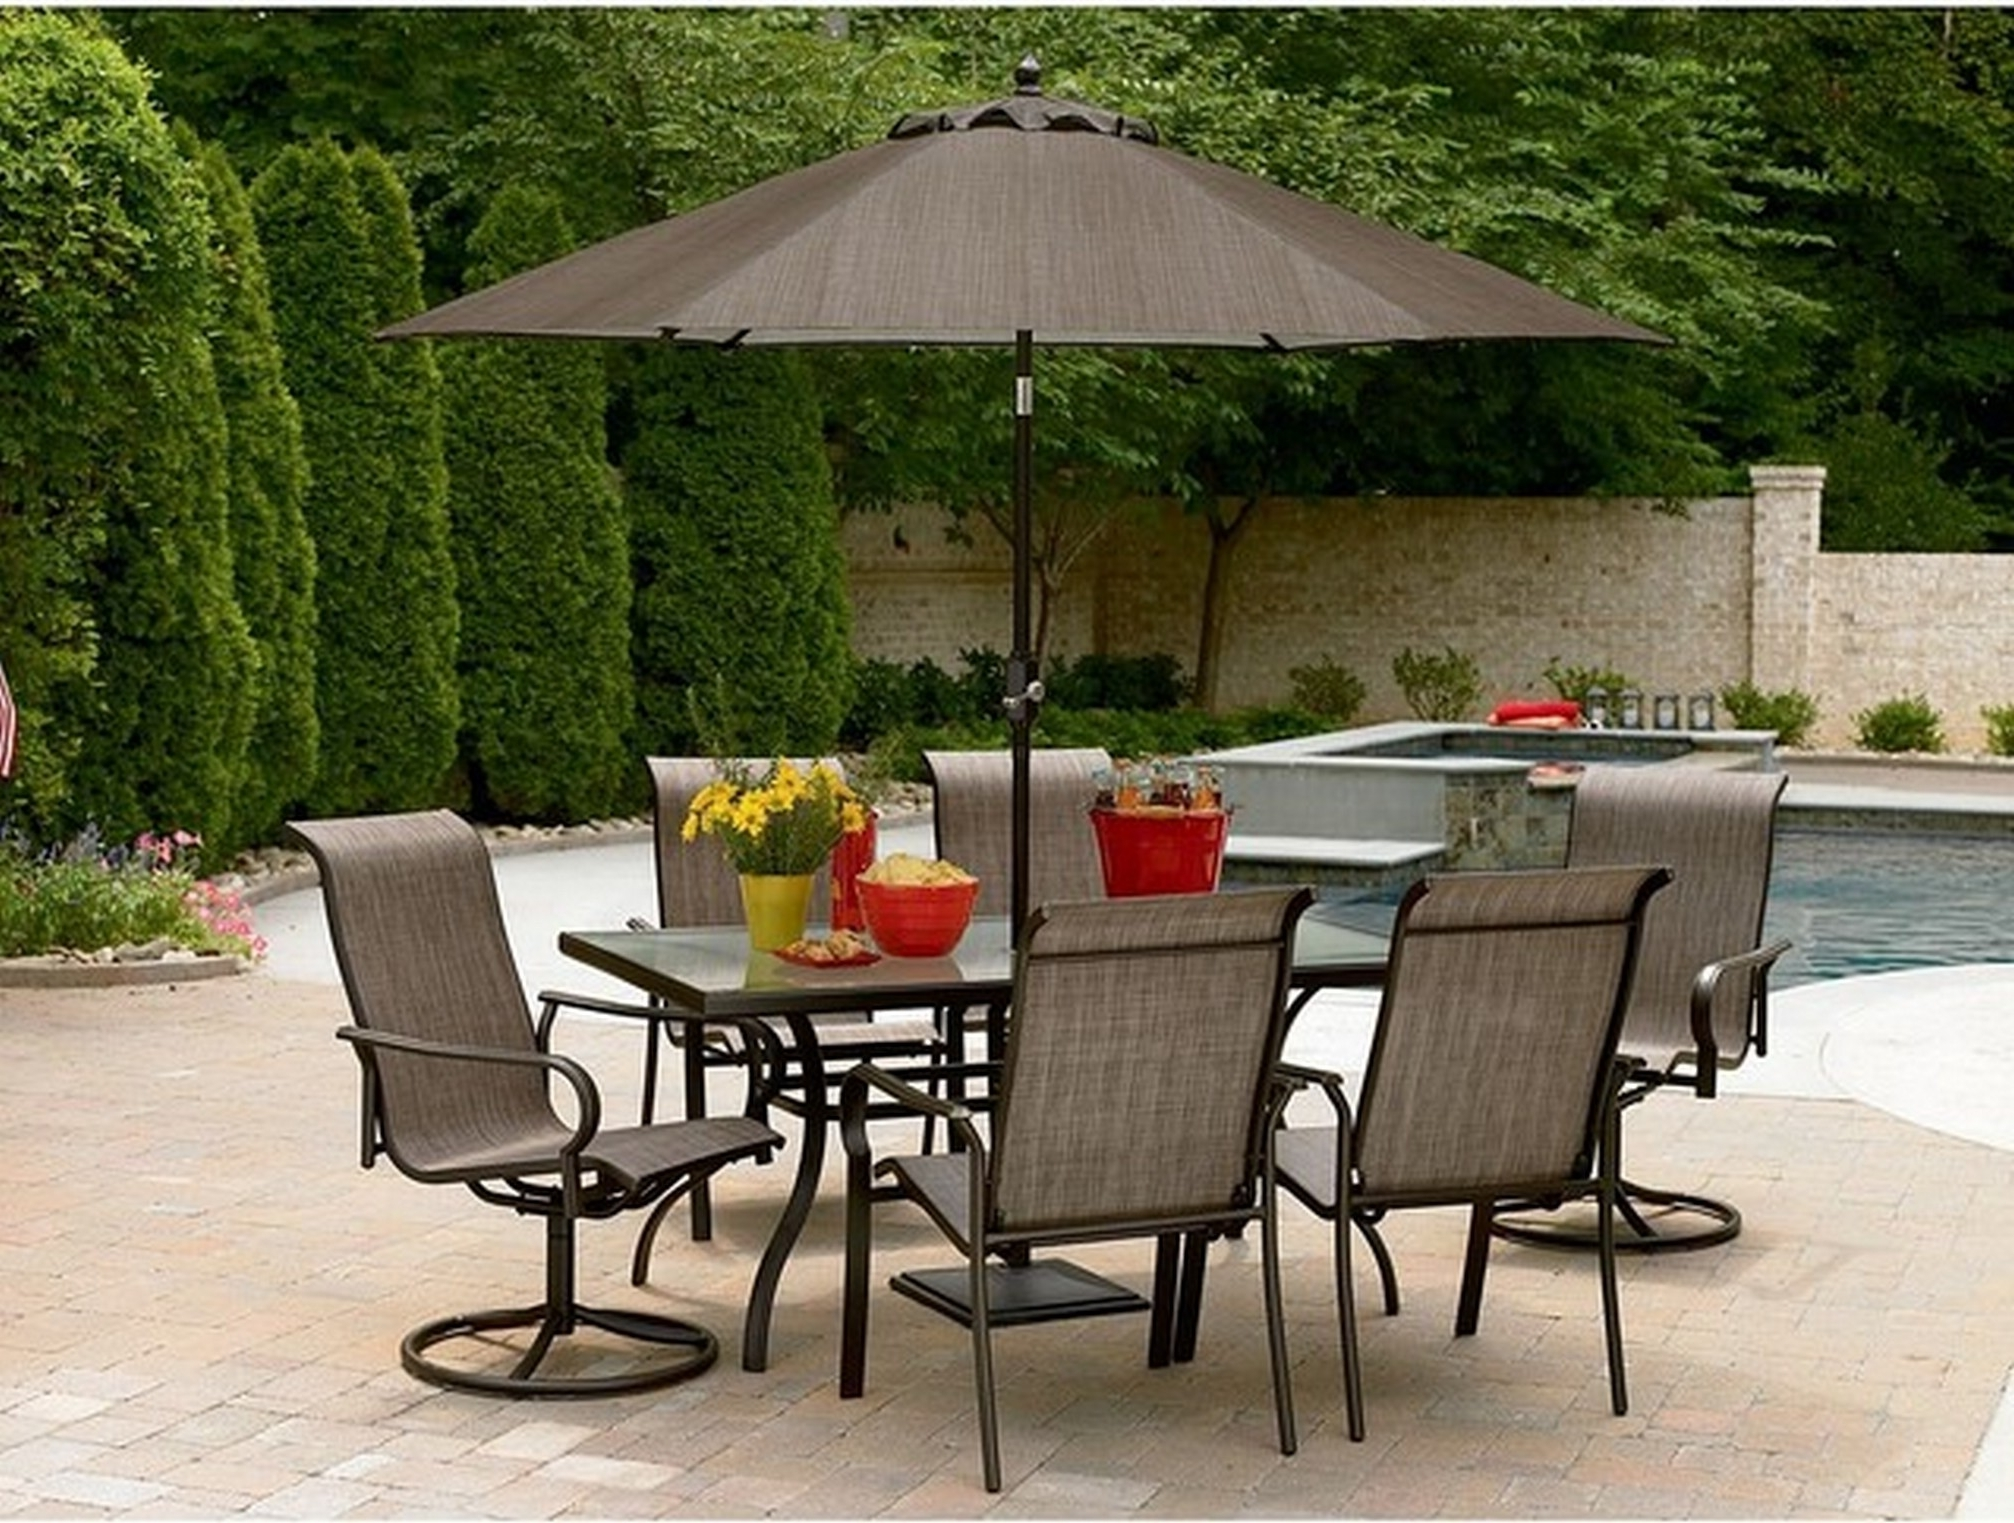 Patio Conversation Sets With Umbrella Regarding Popular Affordable Patio Furniture Sets – Irenerecoverymap (View 15 of 20)